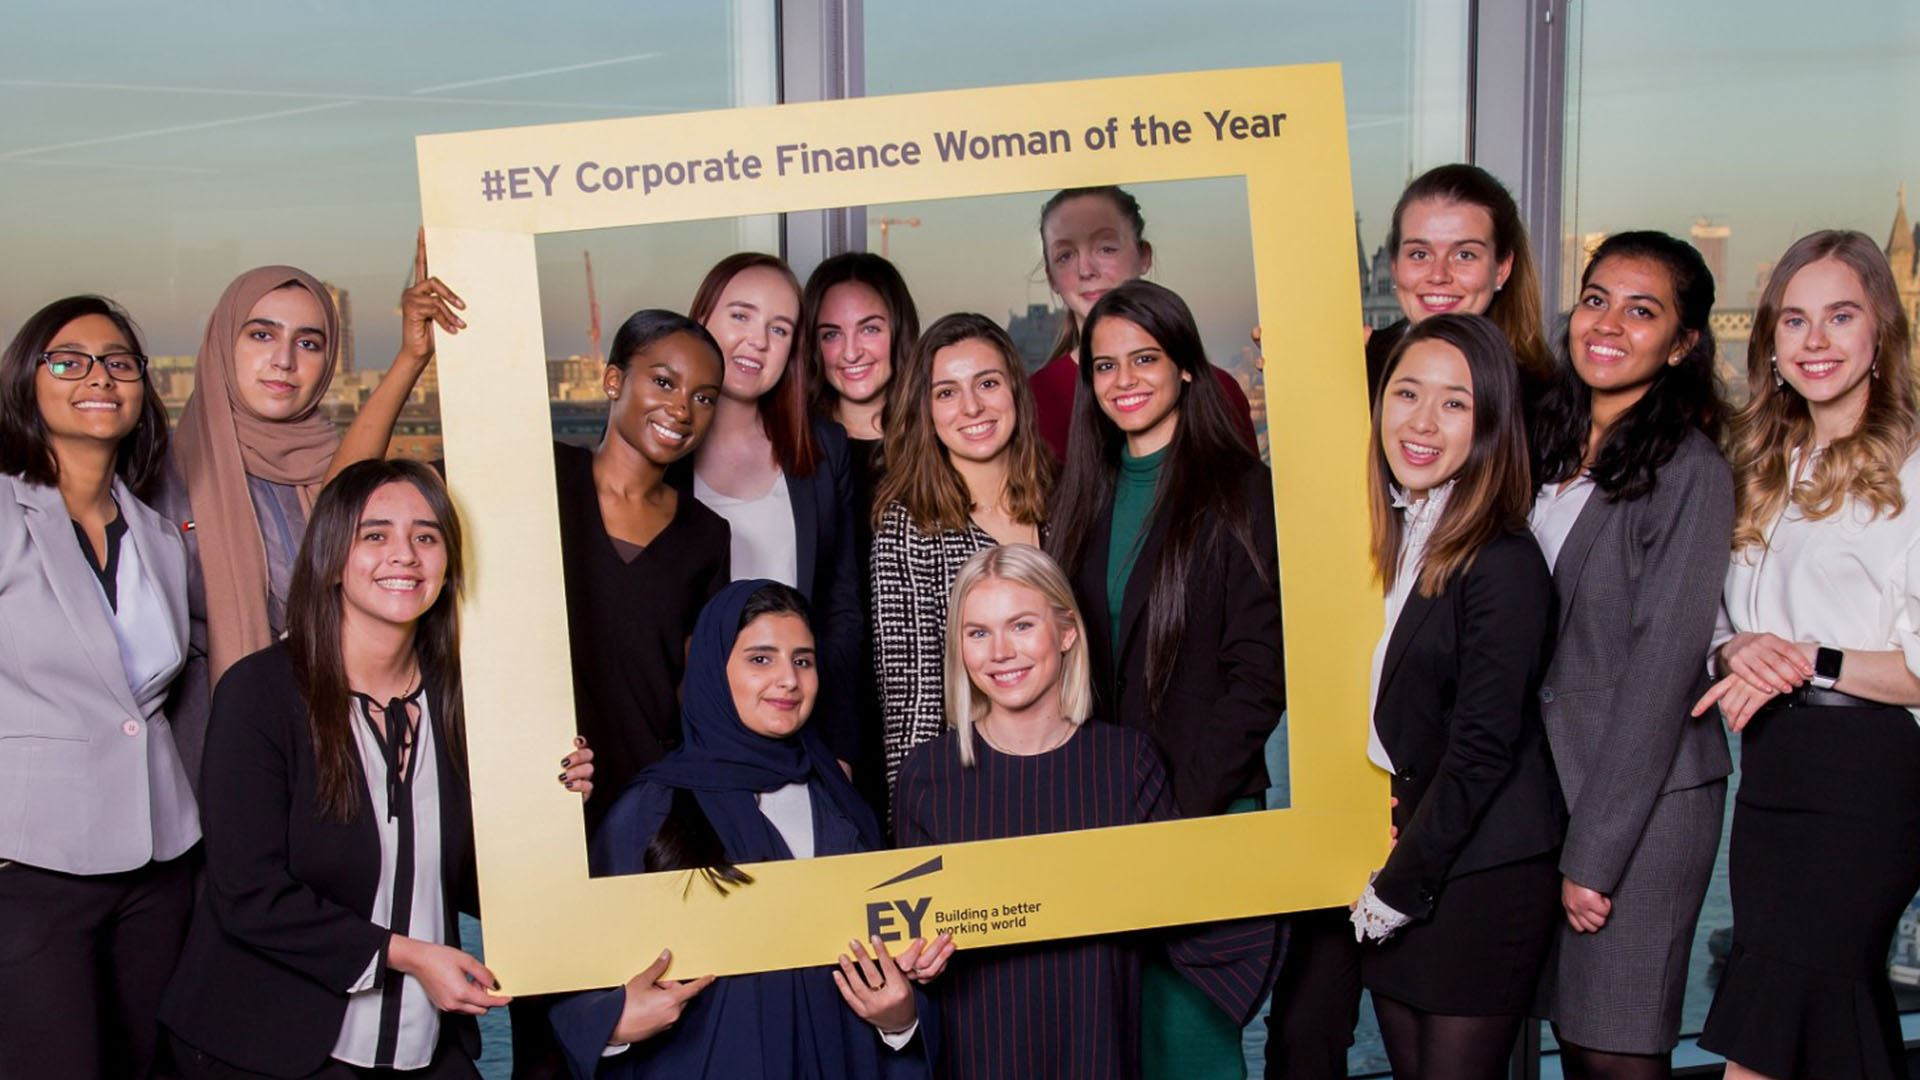 Nova SBE Student Marina Gonzalez wins Spain's EY Corporate Finance Woman of the Year